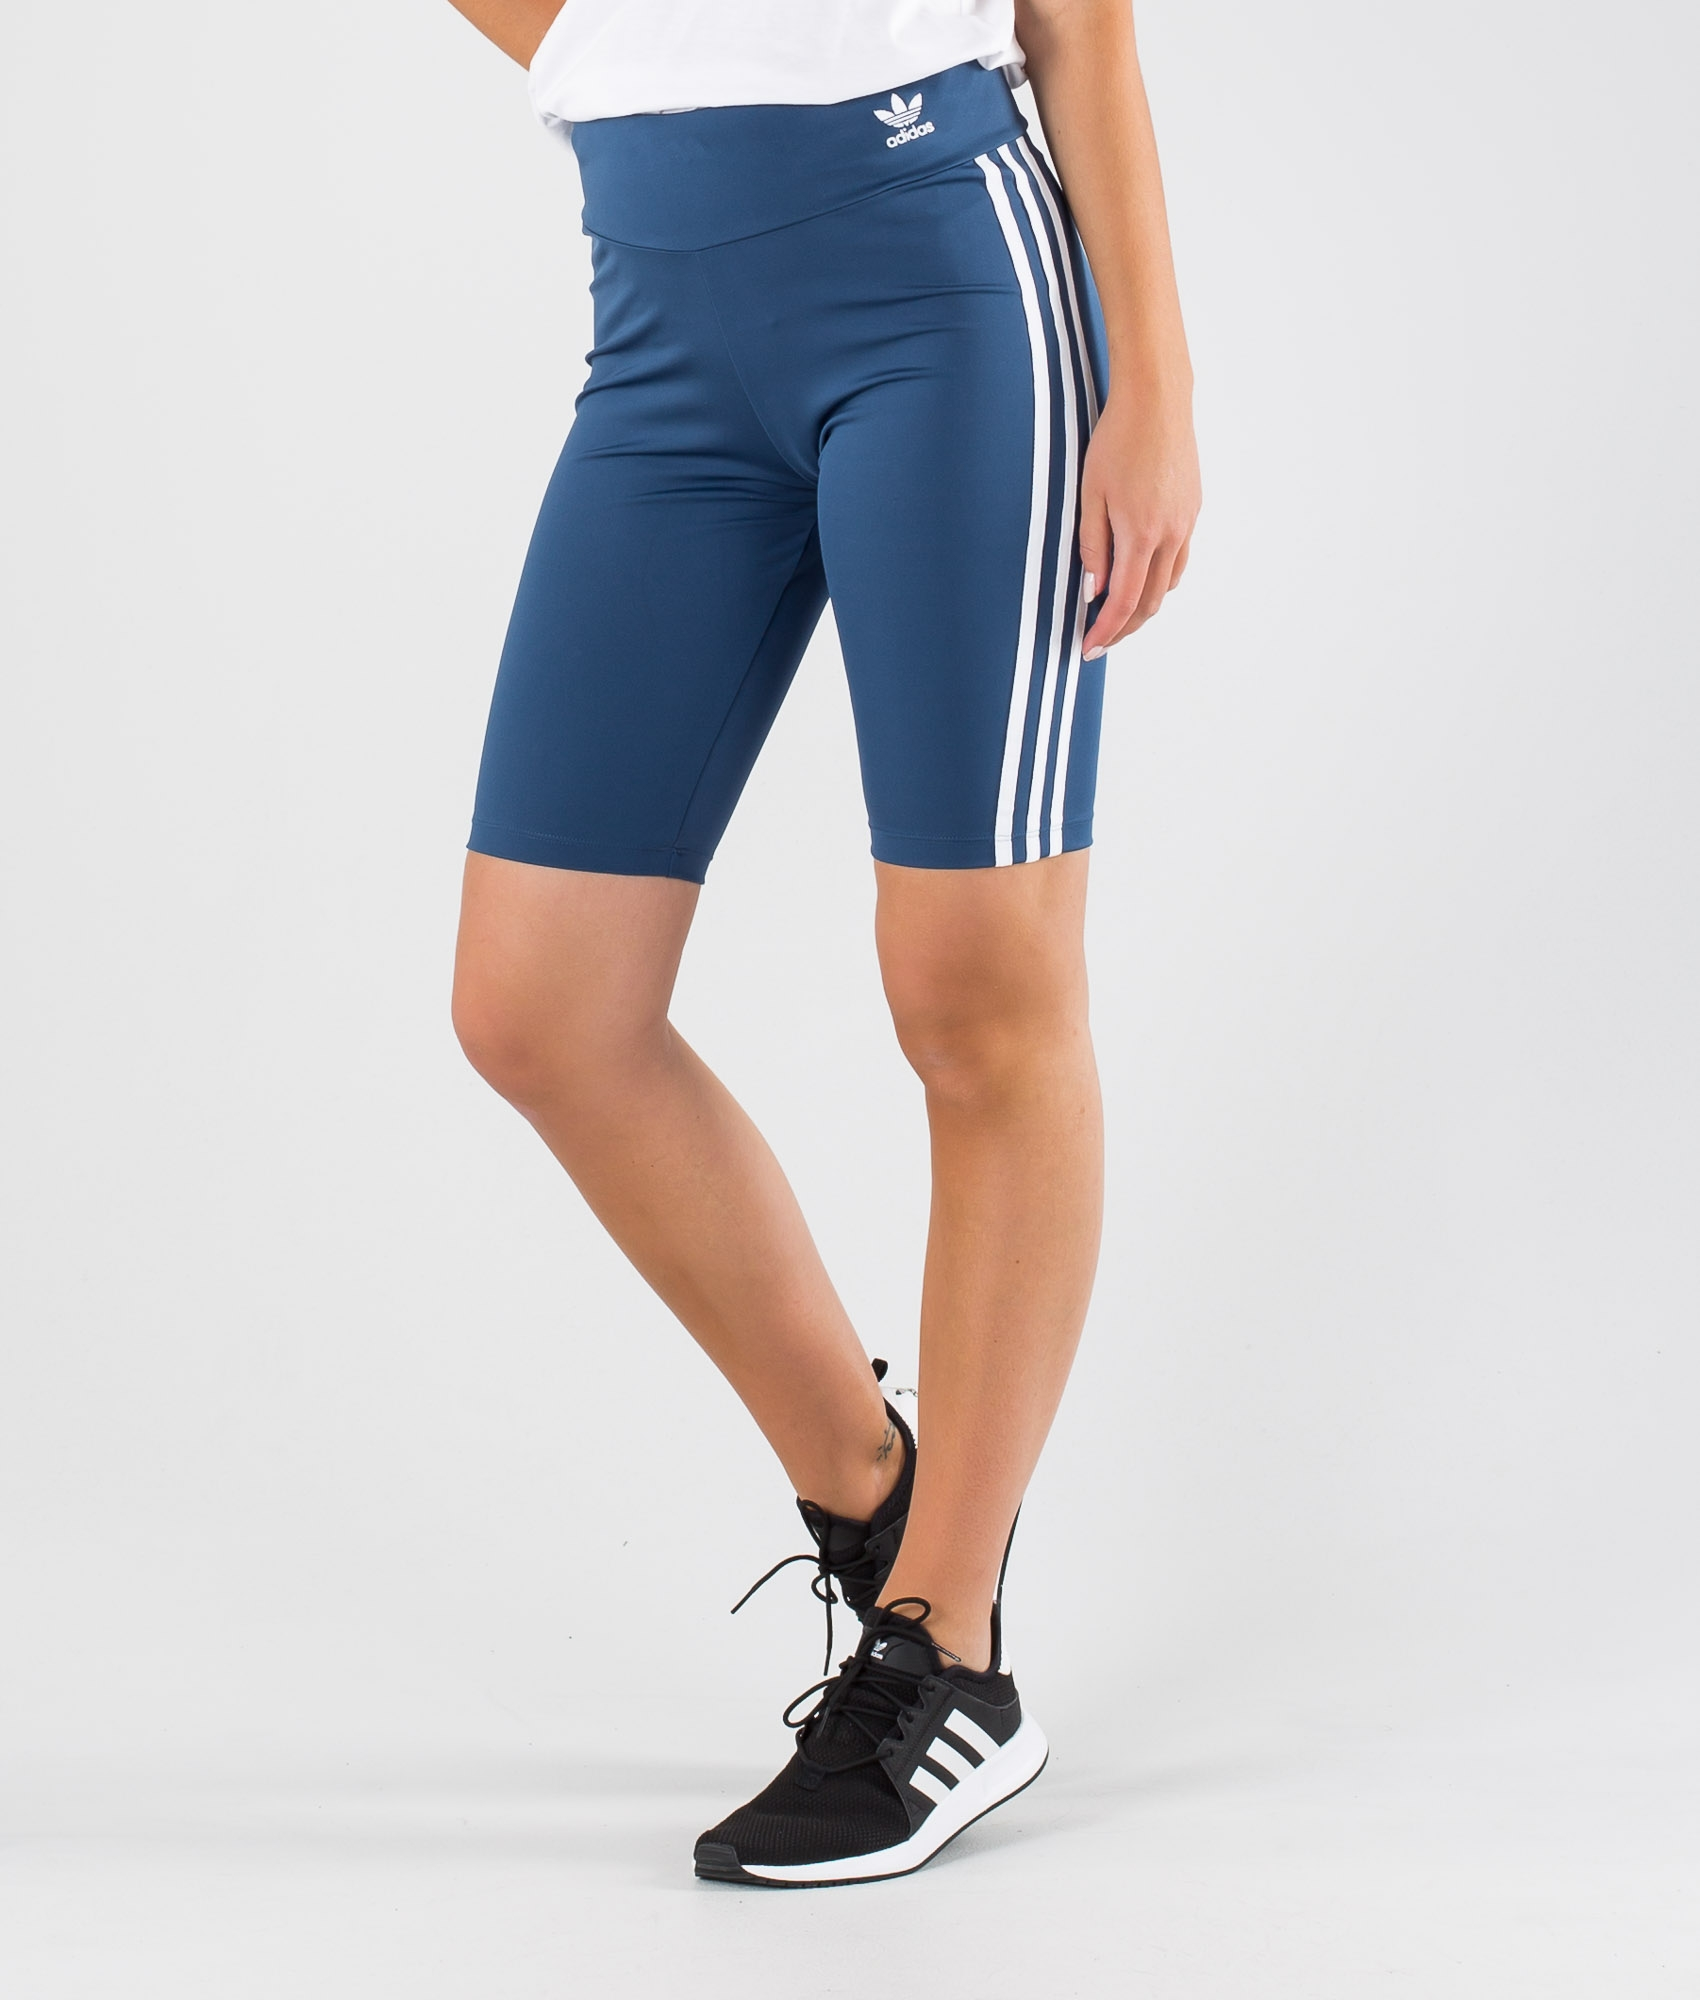 Adidas Originals Short Tights Shorts Night MarinWhite